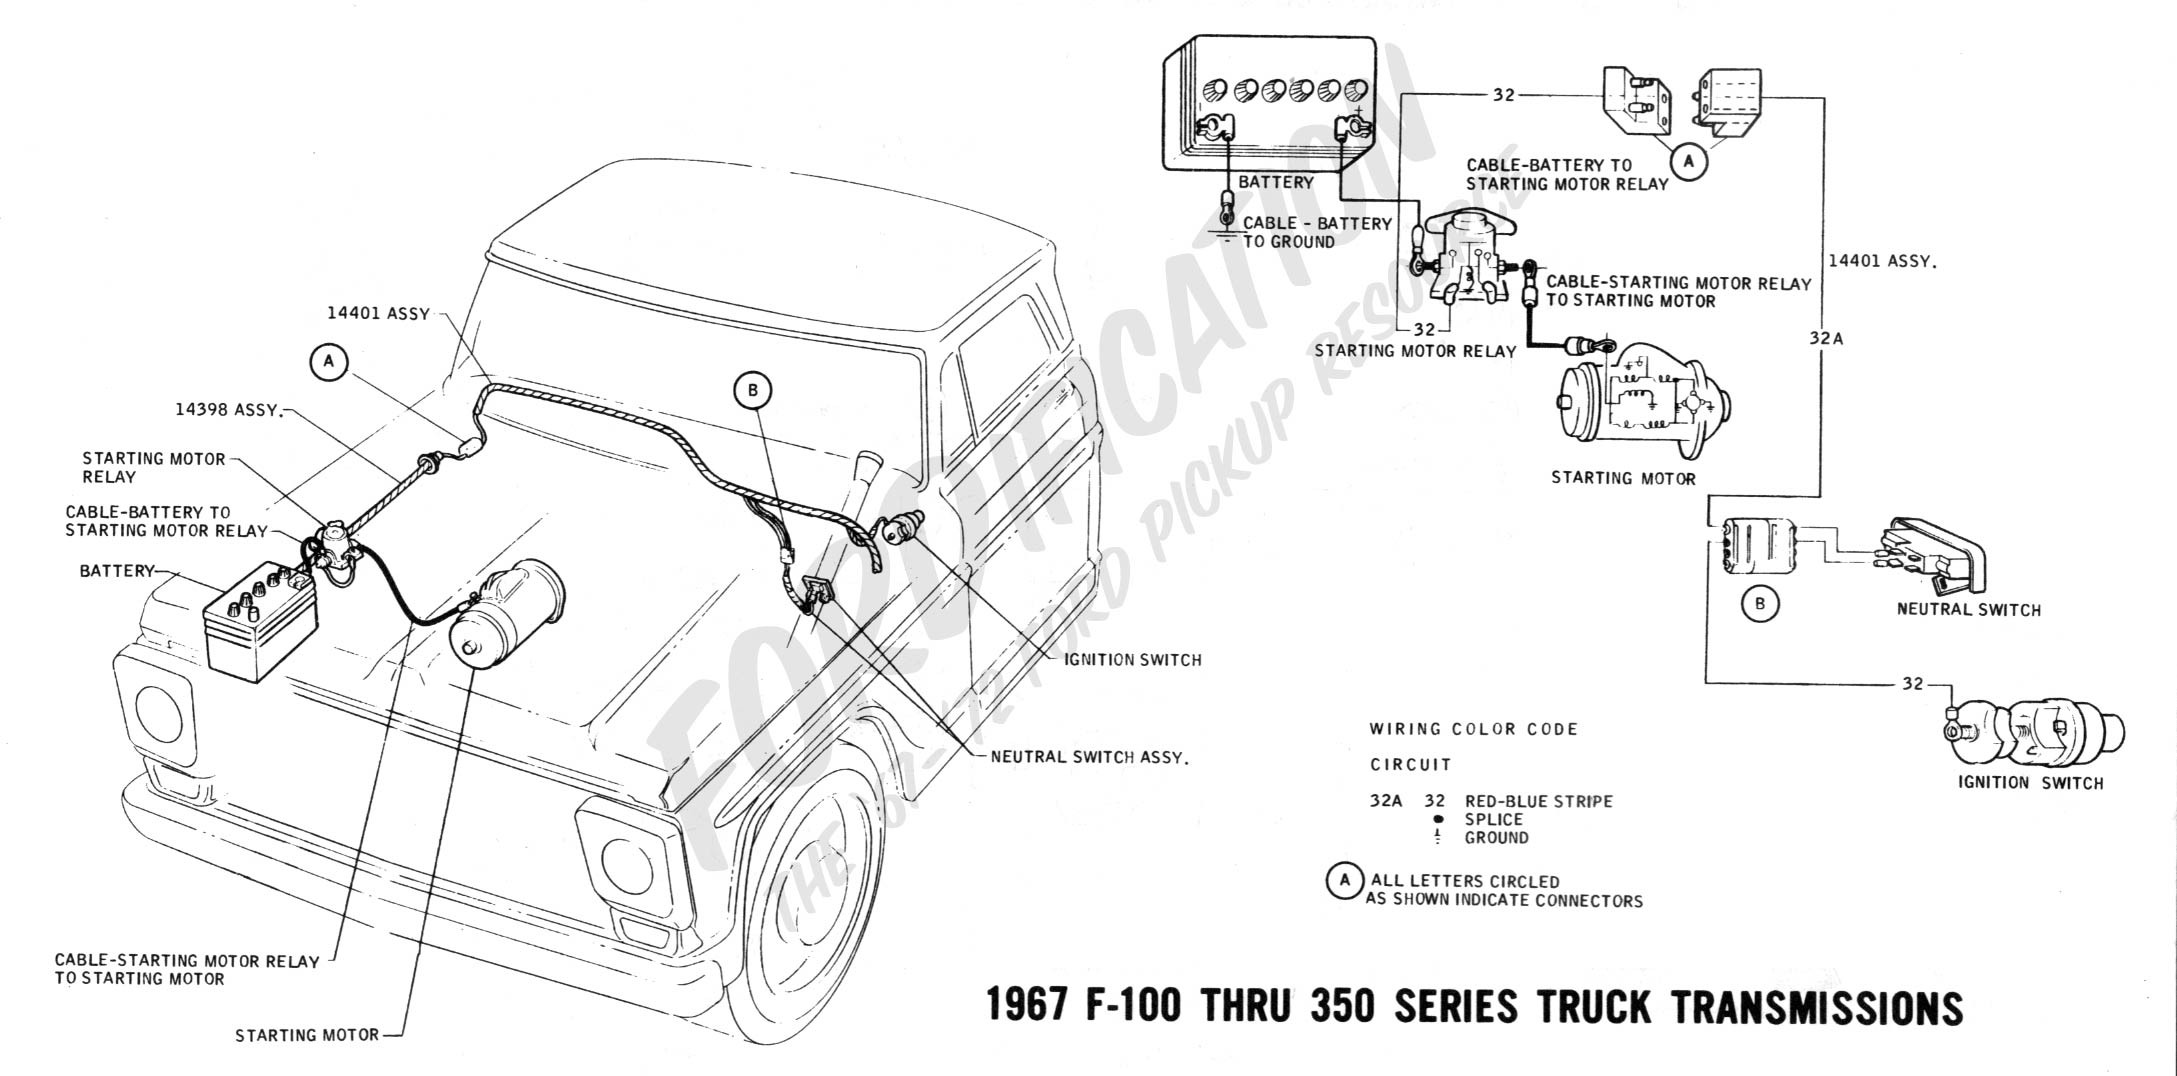 Ford Truck Parts Diagram ford Truck Technical Drawings and Schematics Section H Wiring Of Ford Truck Parts Diagram